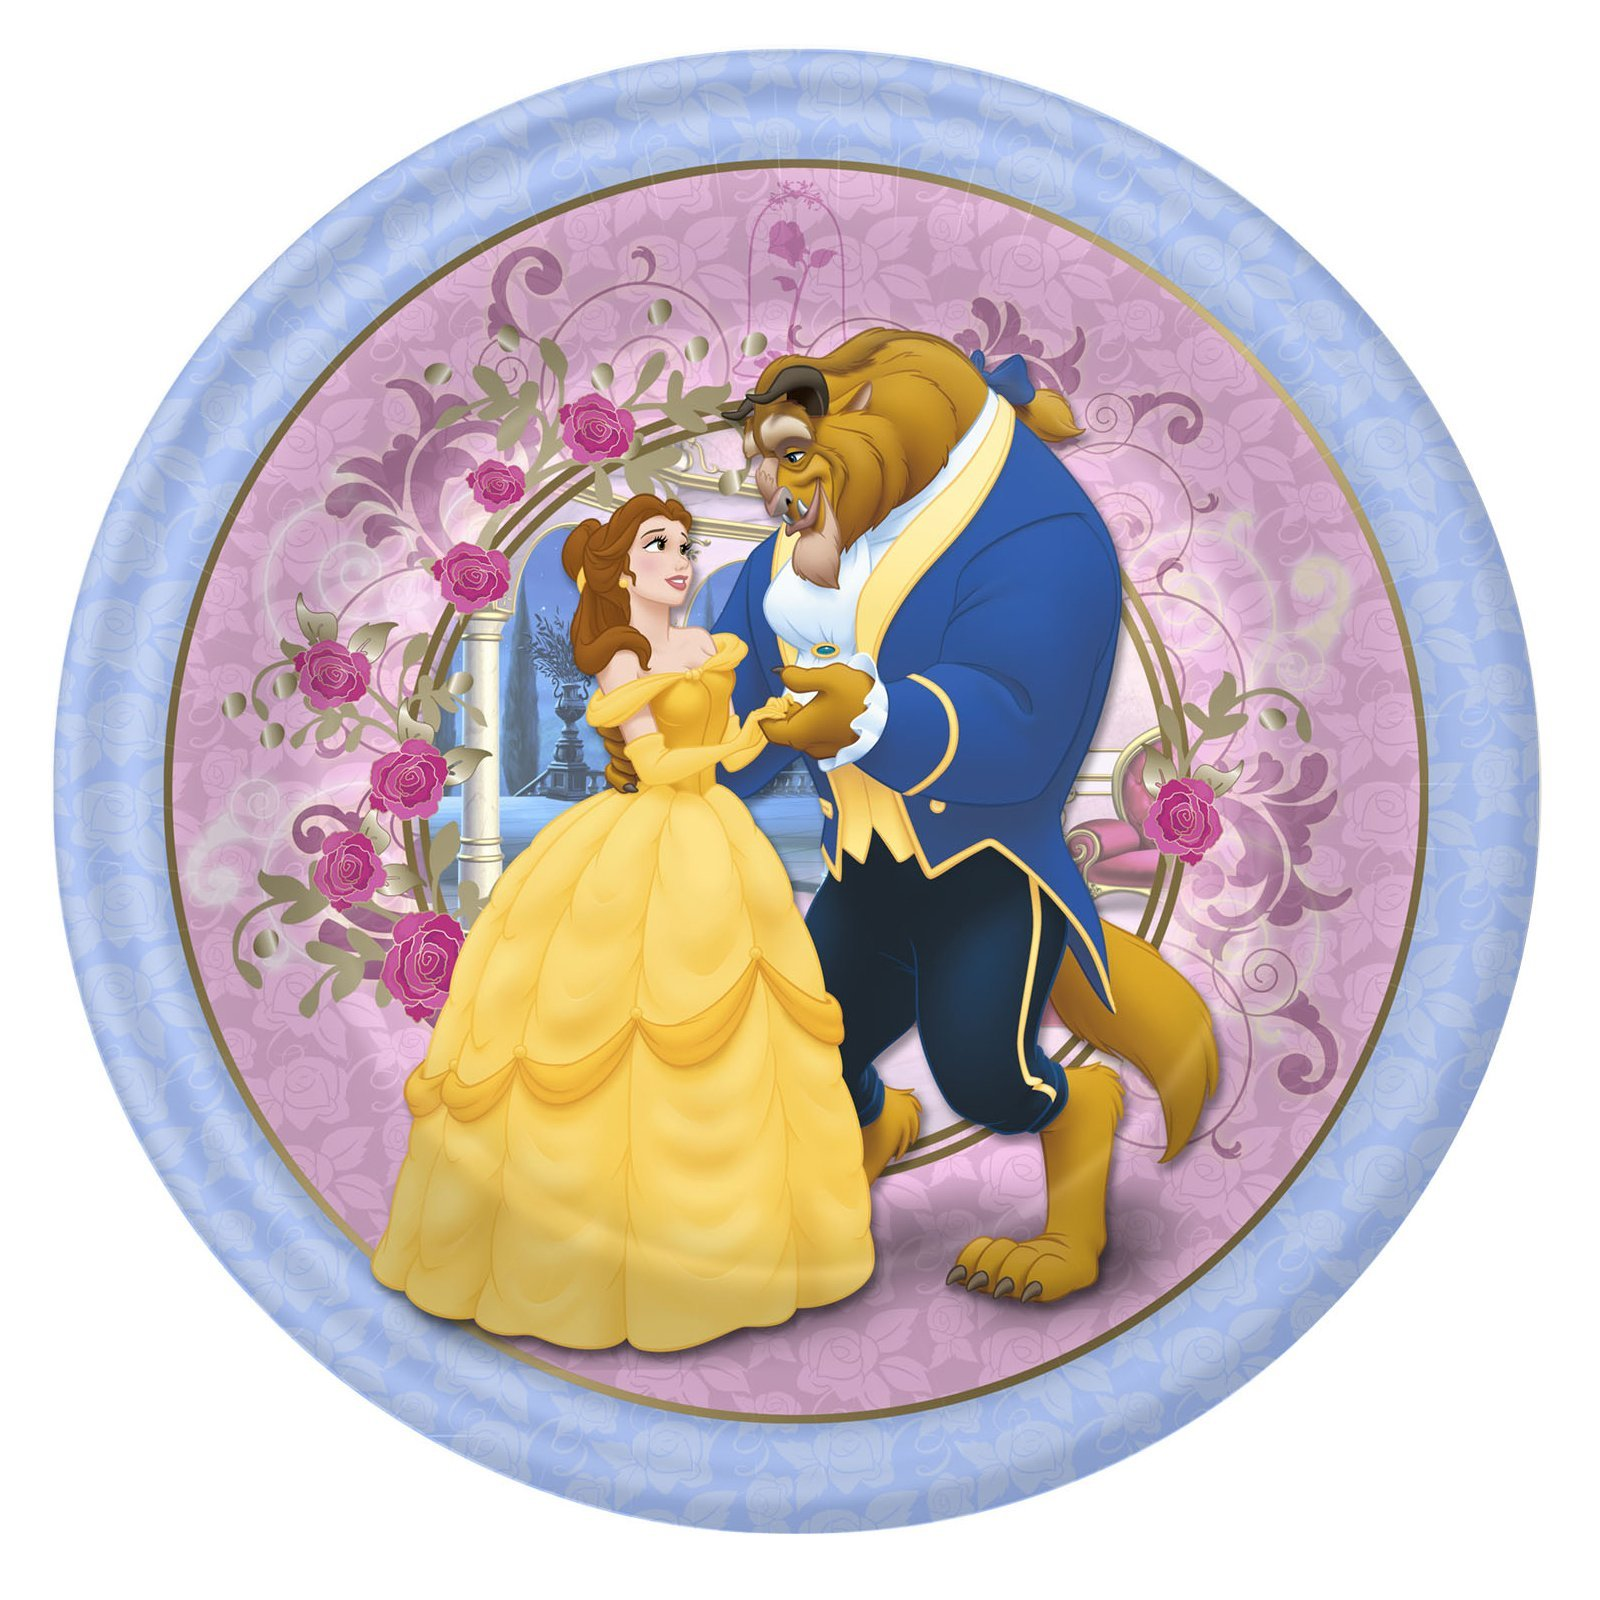 Beauty and the Beast 'Belle' Large Paper Plates (8ct) by Hallmark